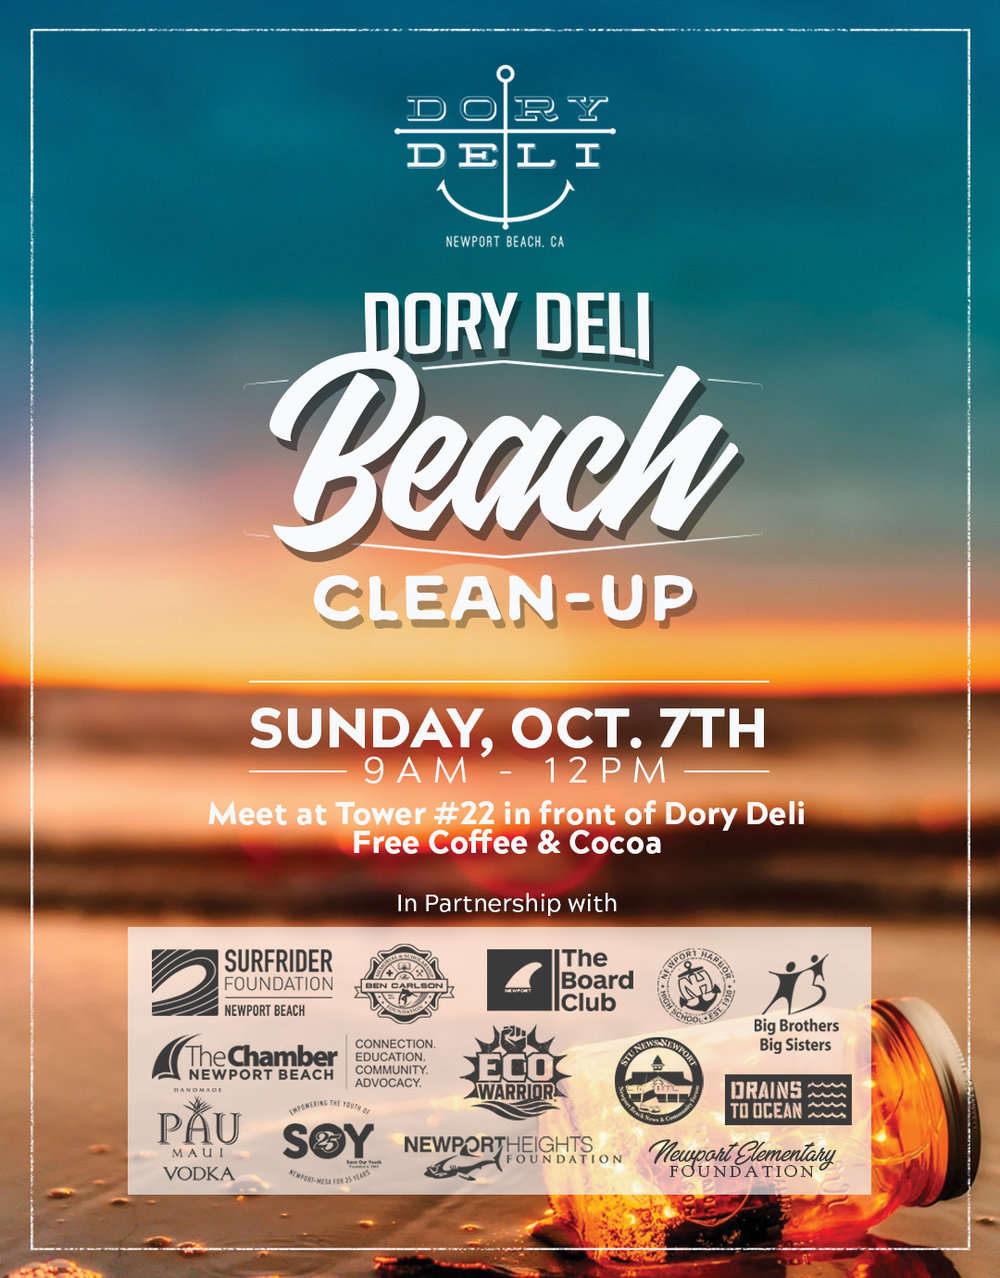 beach_cleanup2018_IG.jpg